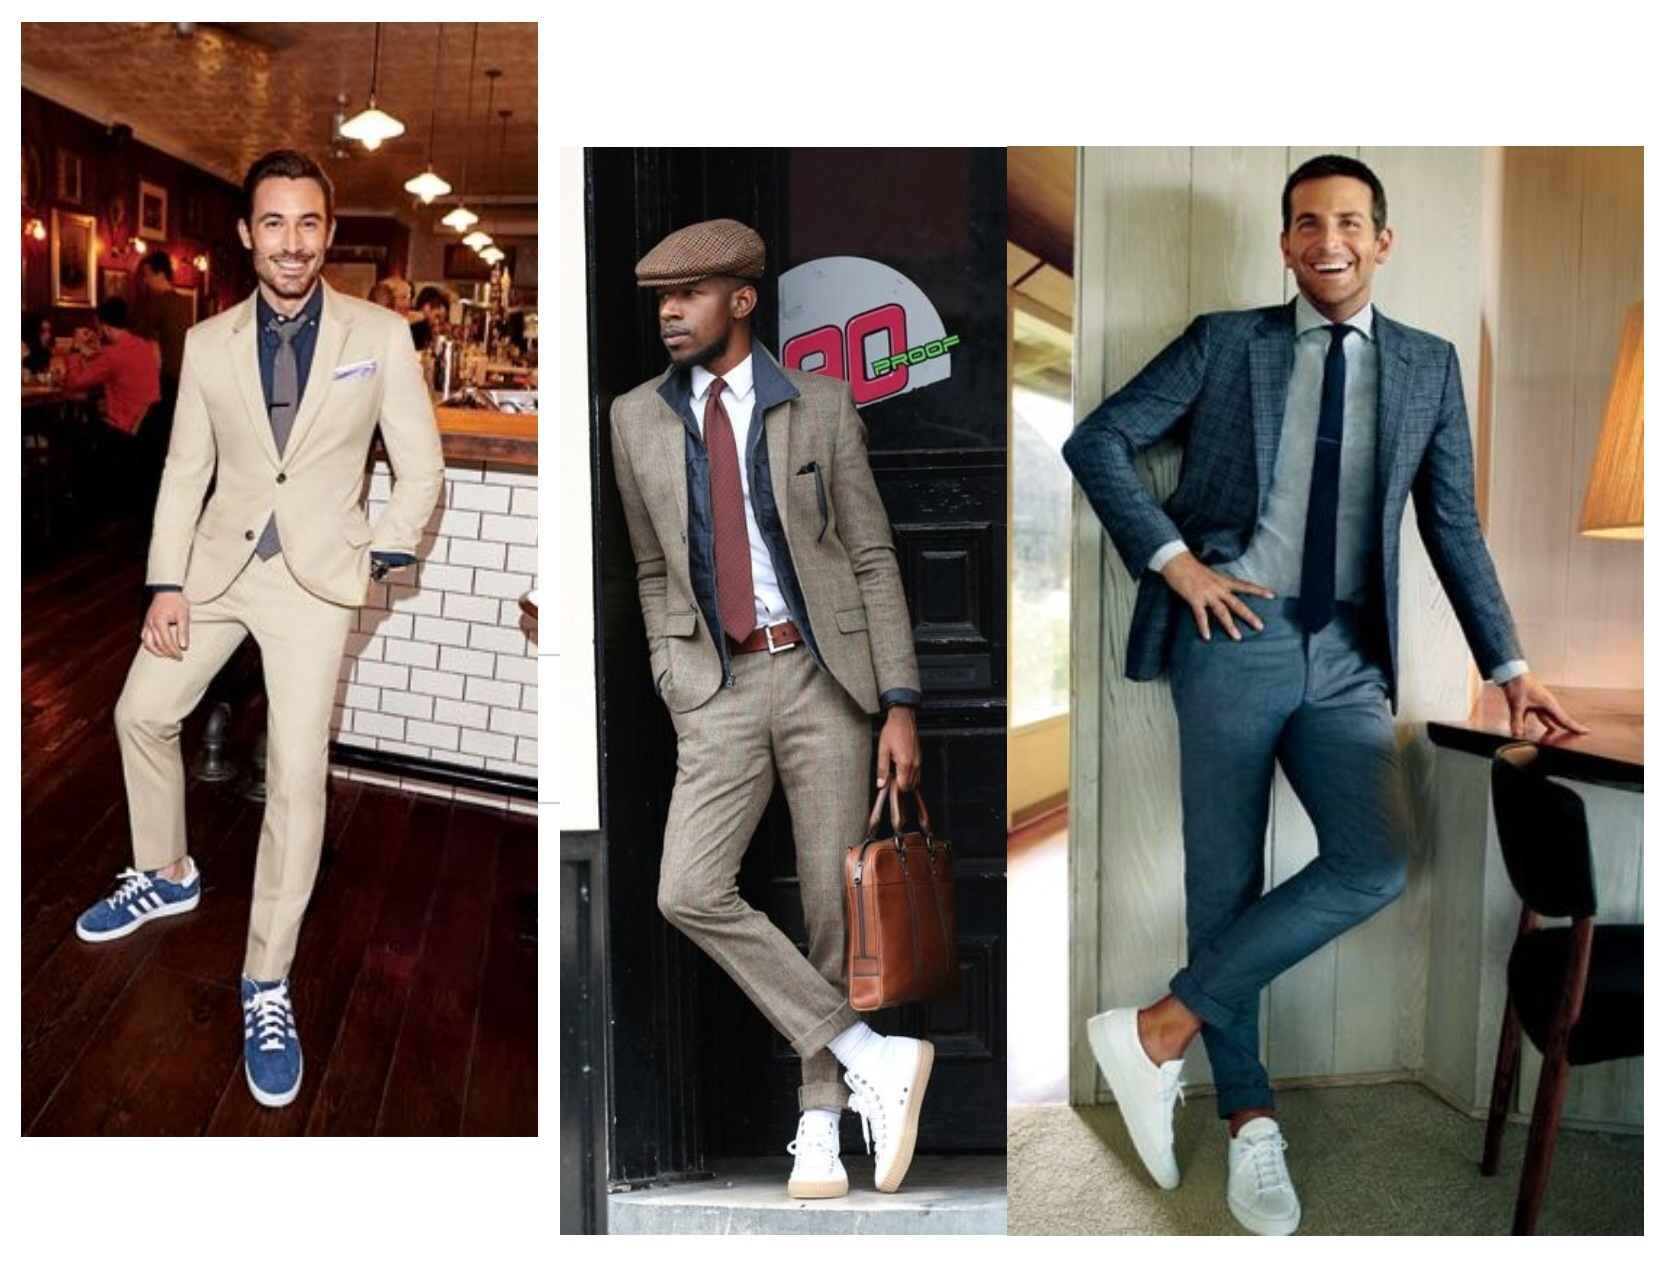 converse shoes are boring wear sneakers with suits fashion